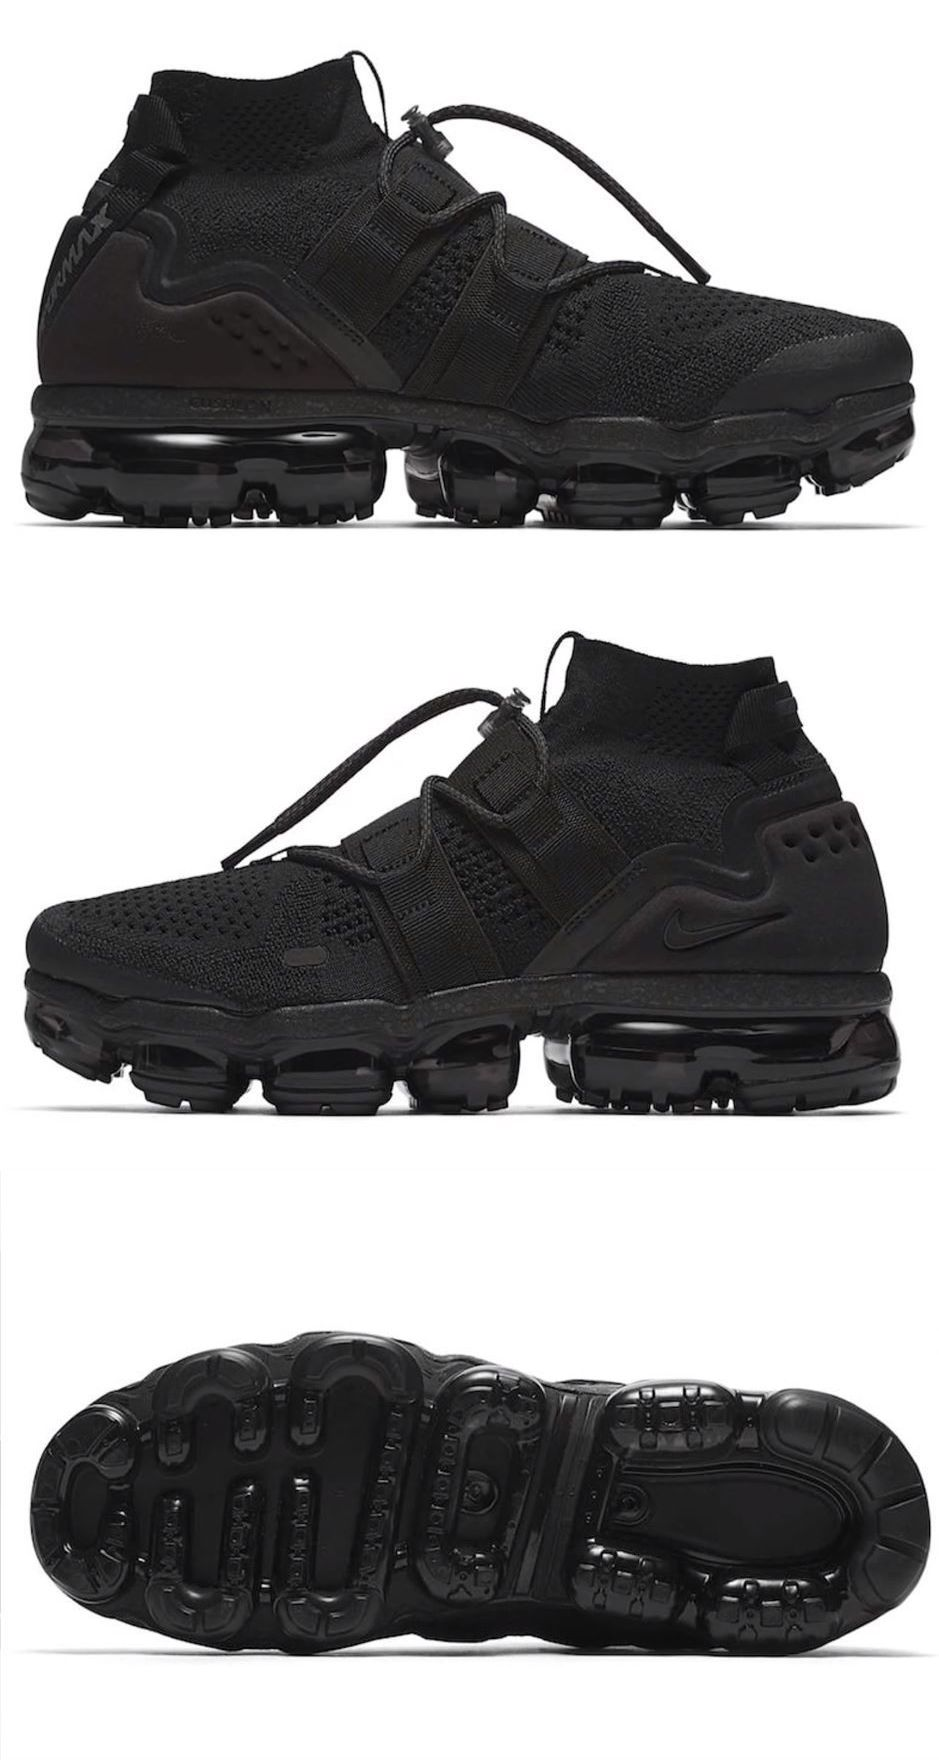 5c4ac5165513 Mens Shoes 93427  Men S Air Vapormax Flyknit Utility Triple Black With Box  Style  Ah6834-001 -  BUY IT NOW ONLY   149.5 on eBay!